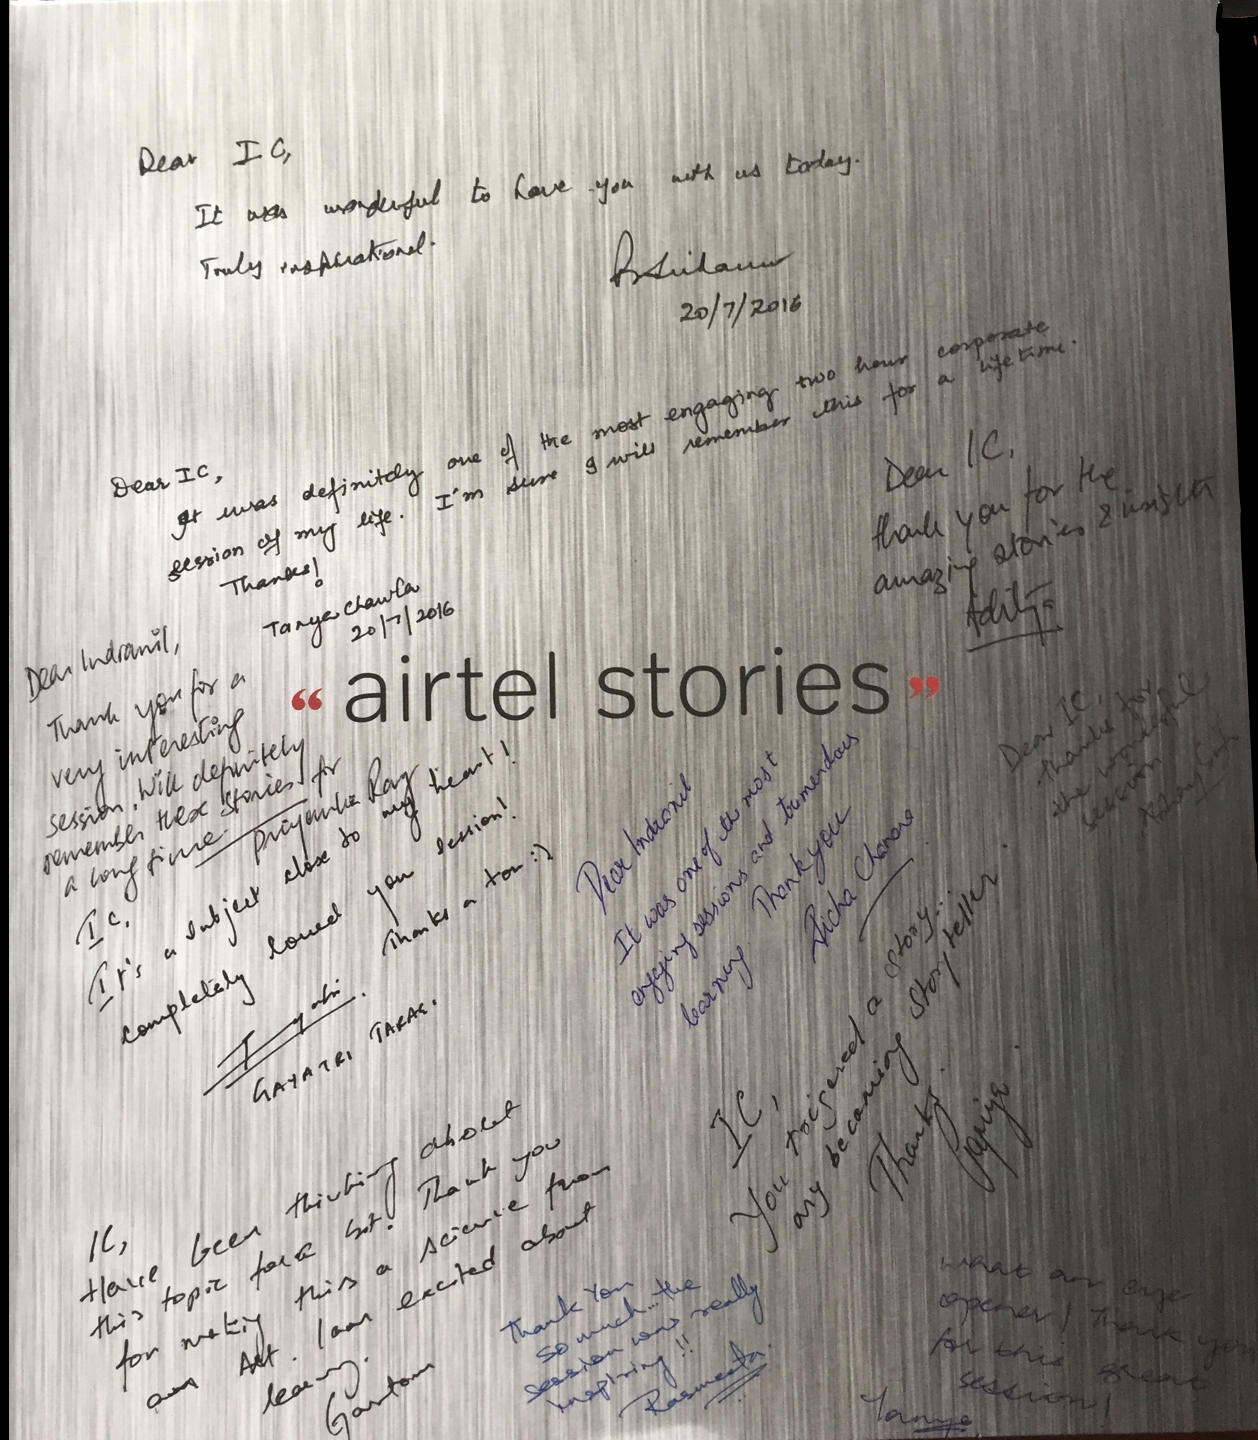 history of airtel Bharti airtel bharti airtel limited is a leading global telecommunications company with operations in 20 countries across asia and africa headquartered in new delhi.